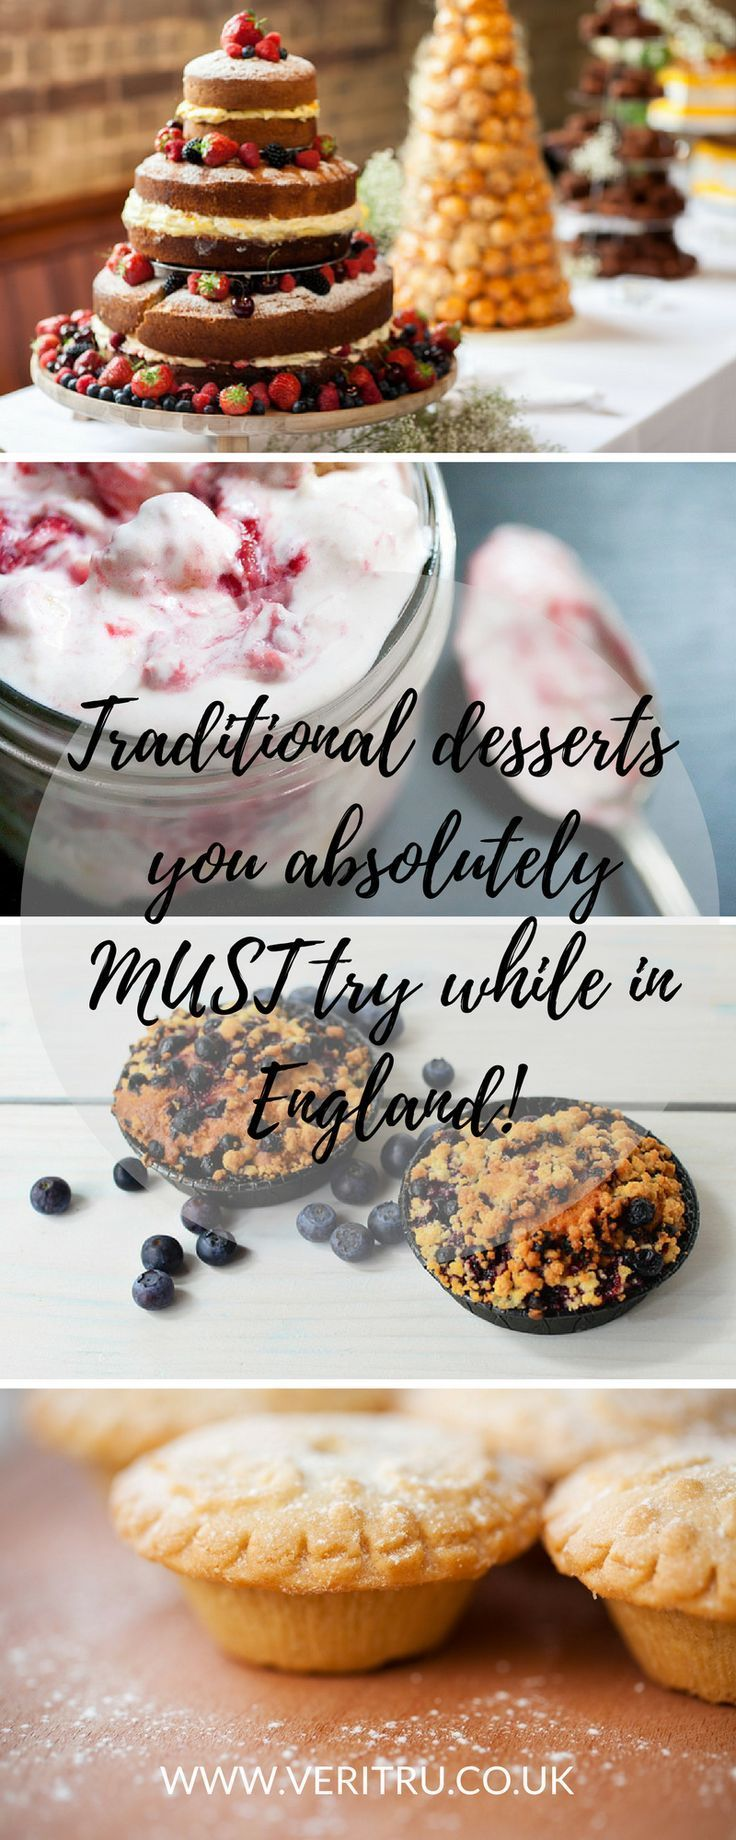 Traditional Puddings Or Desserts You Absolutely MUST Try